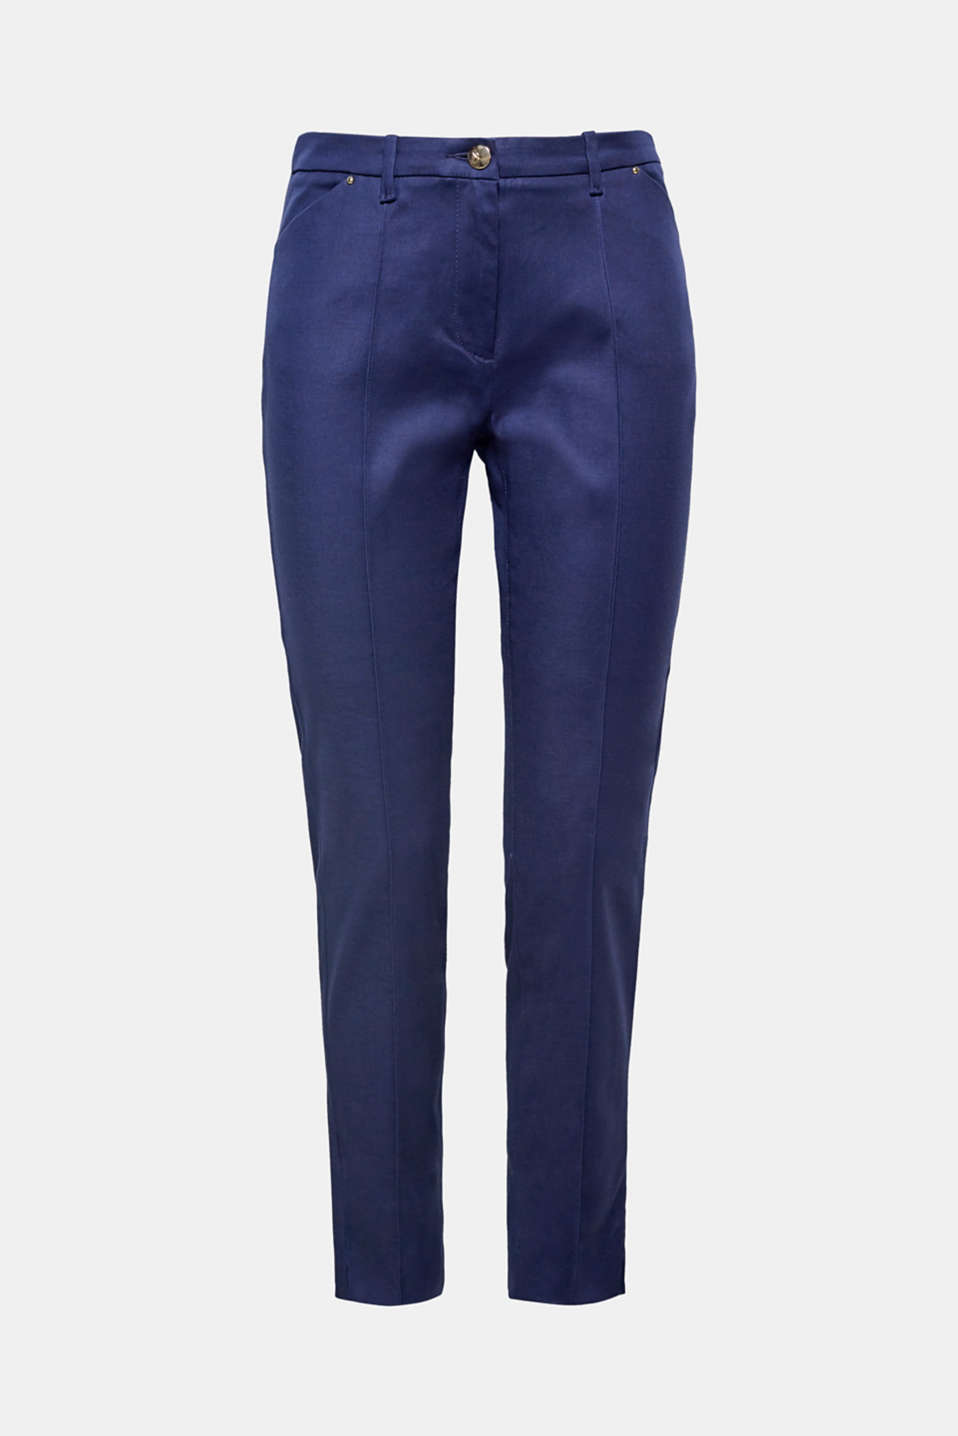 For everyday wear or work: these ankle-length stretch trousers with a front seam and decorative studs are so versatile.